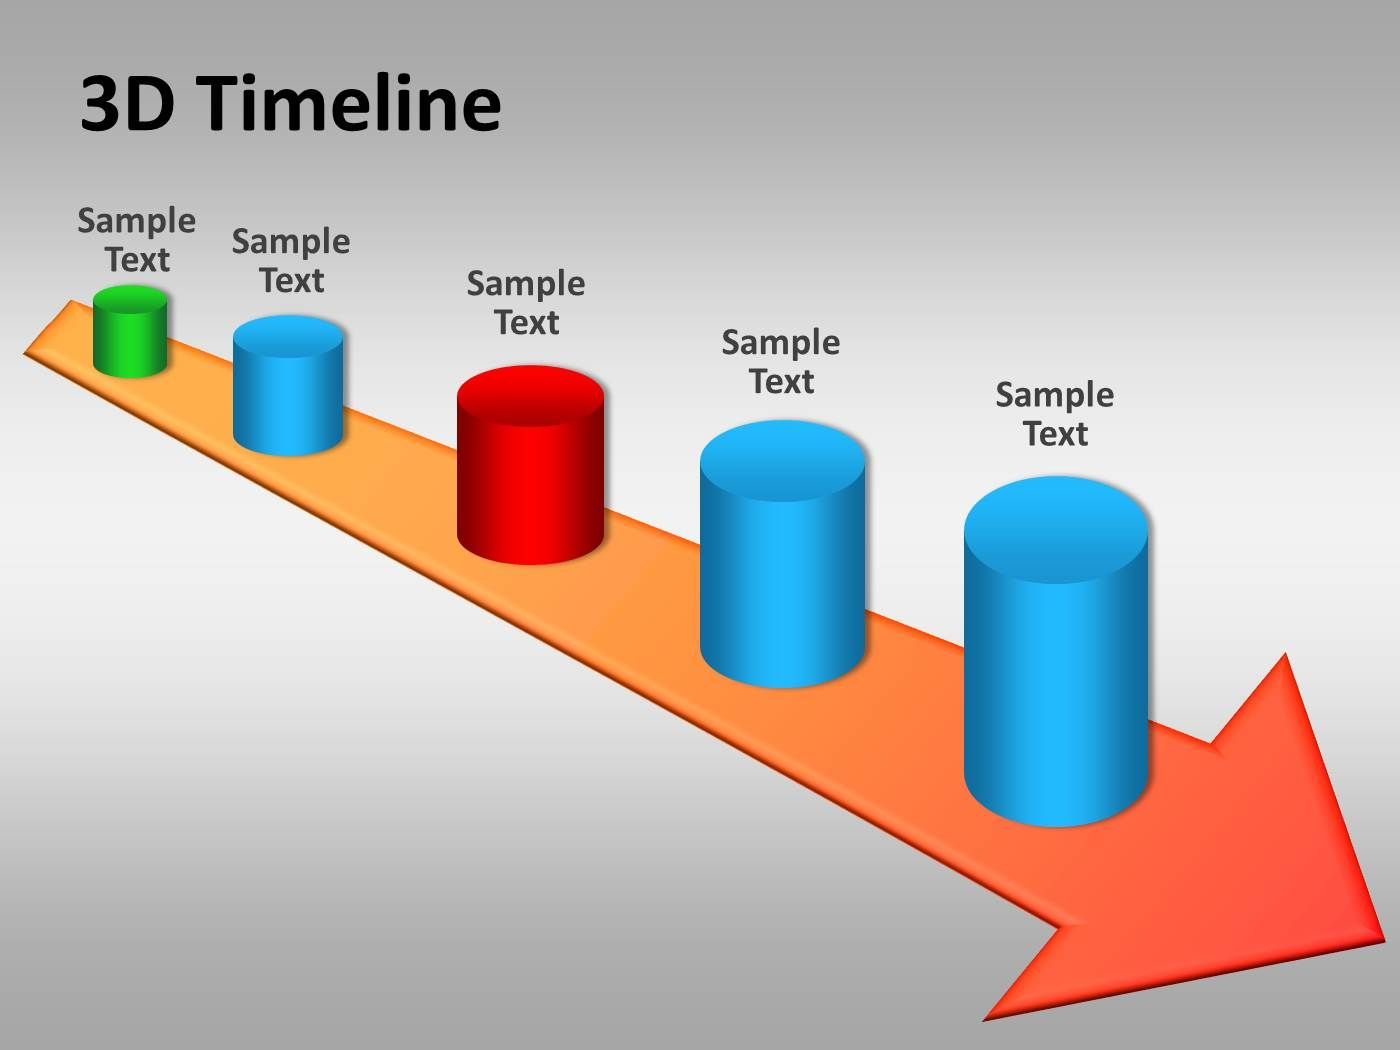 3d timeline powerpoint template is a free timeline template design, Powerpoint templates